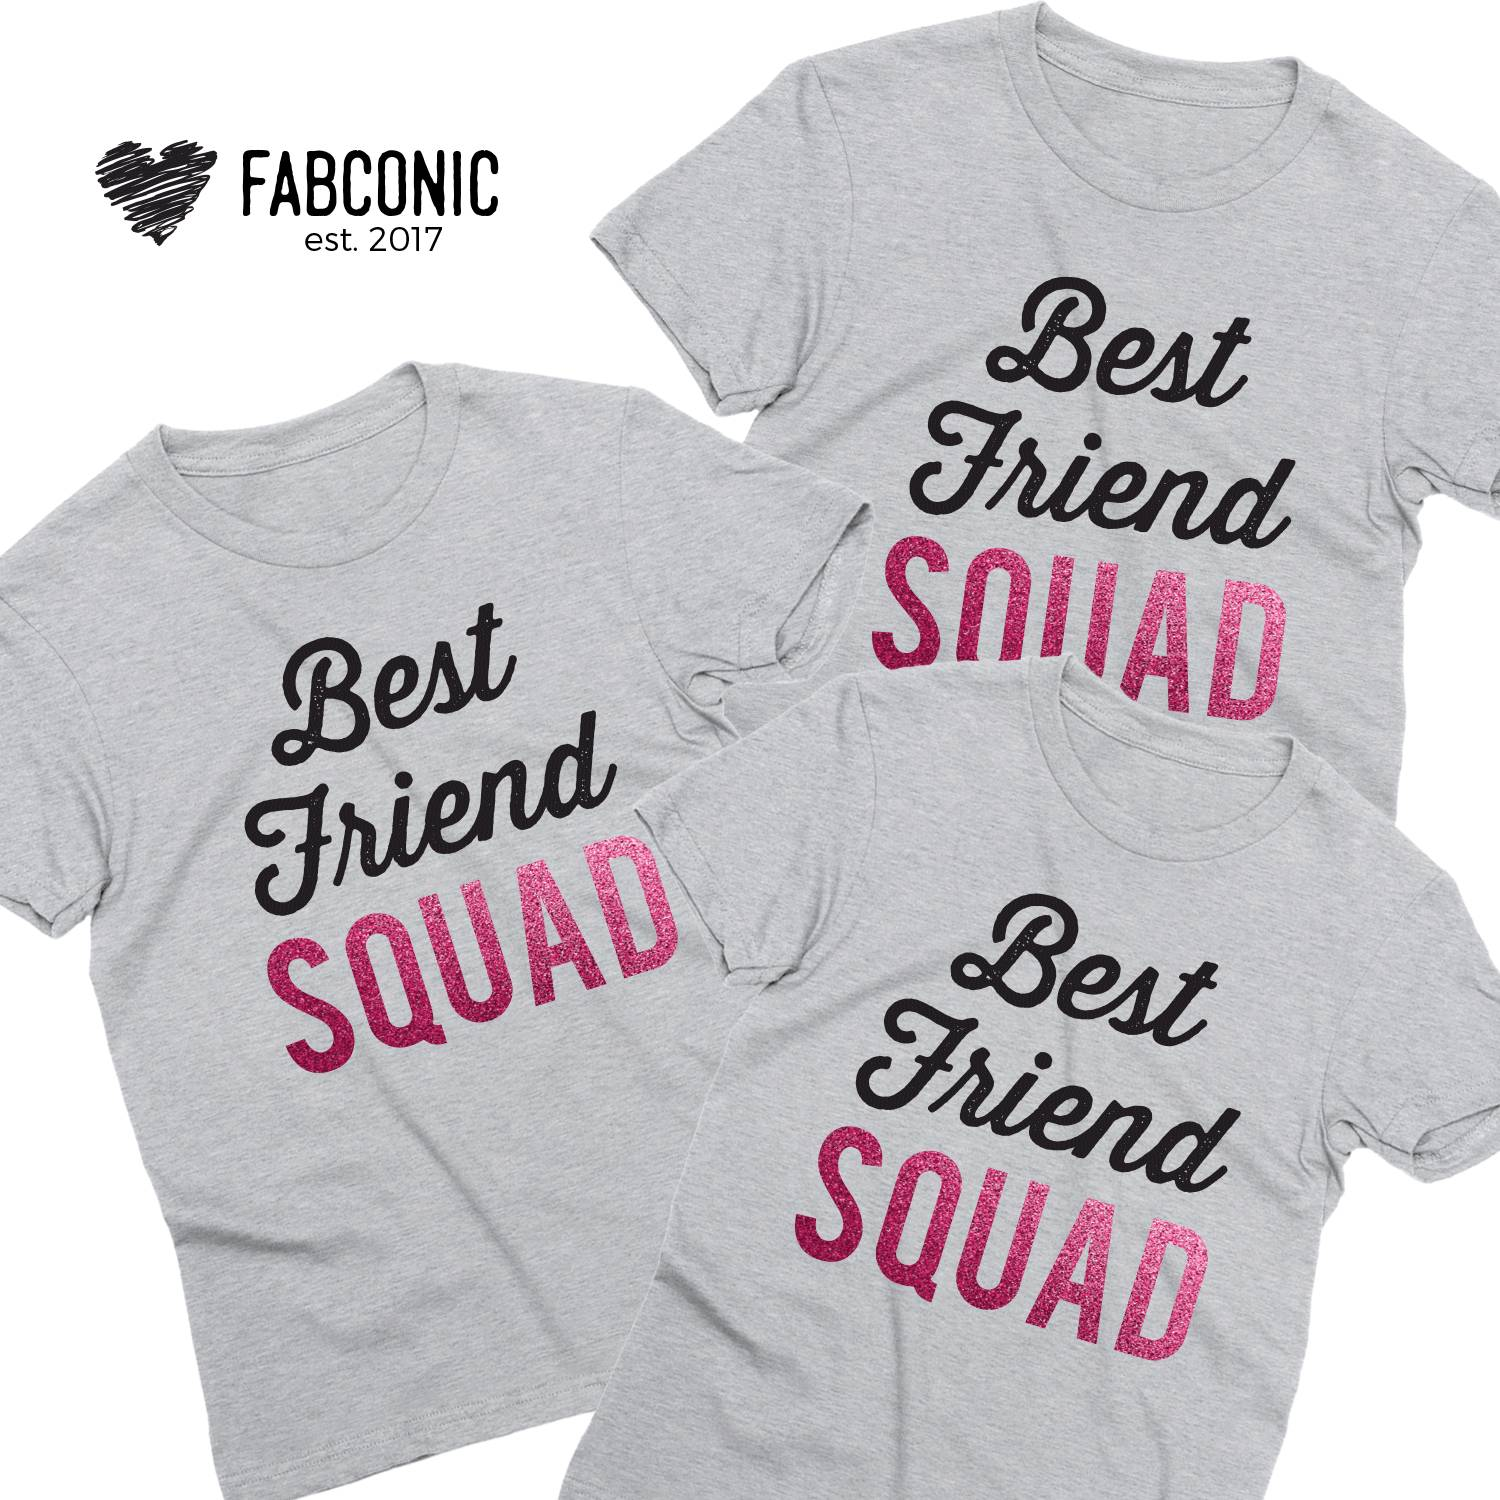 Best Friend Shirts Are For Everyone